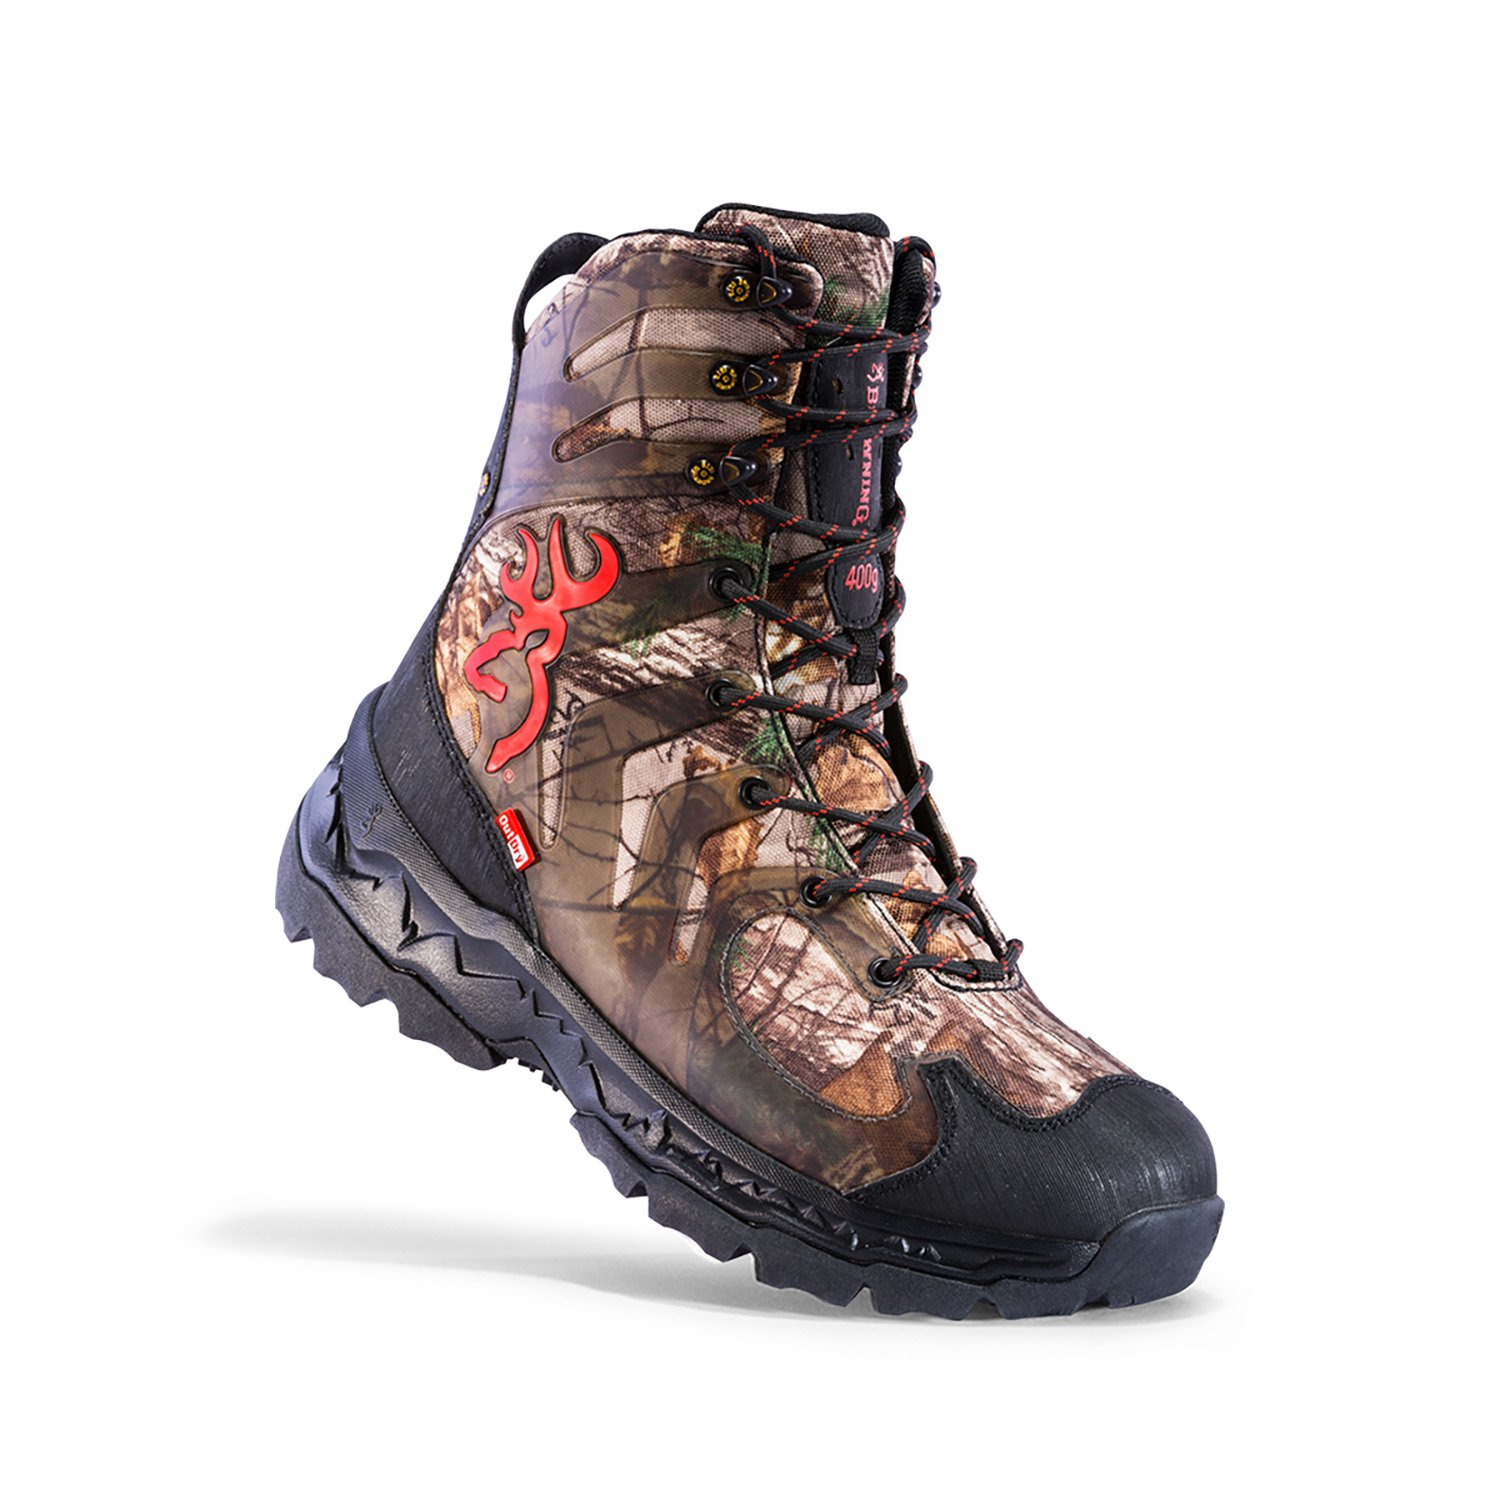 Browning Mens Buck Shadow 8in Big Game Boots, Realtree Xtra/Black, 9M, F000003590130